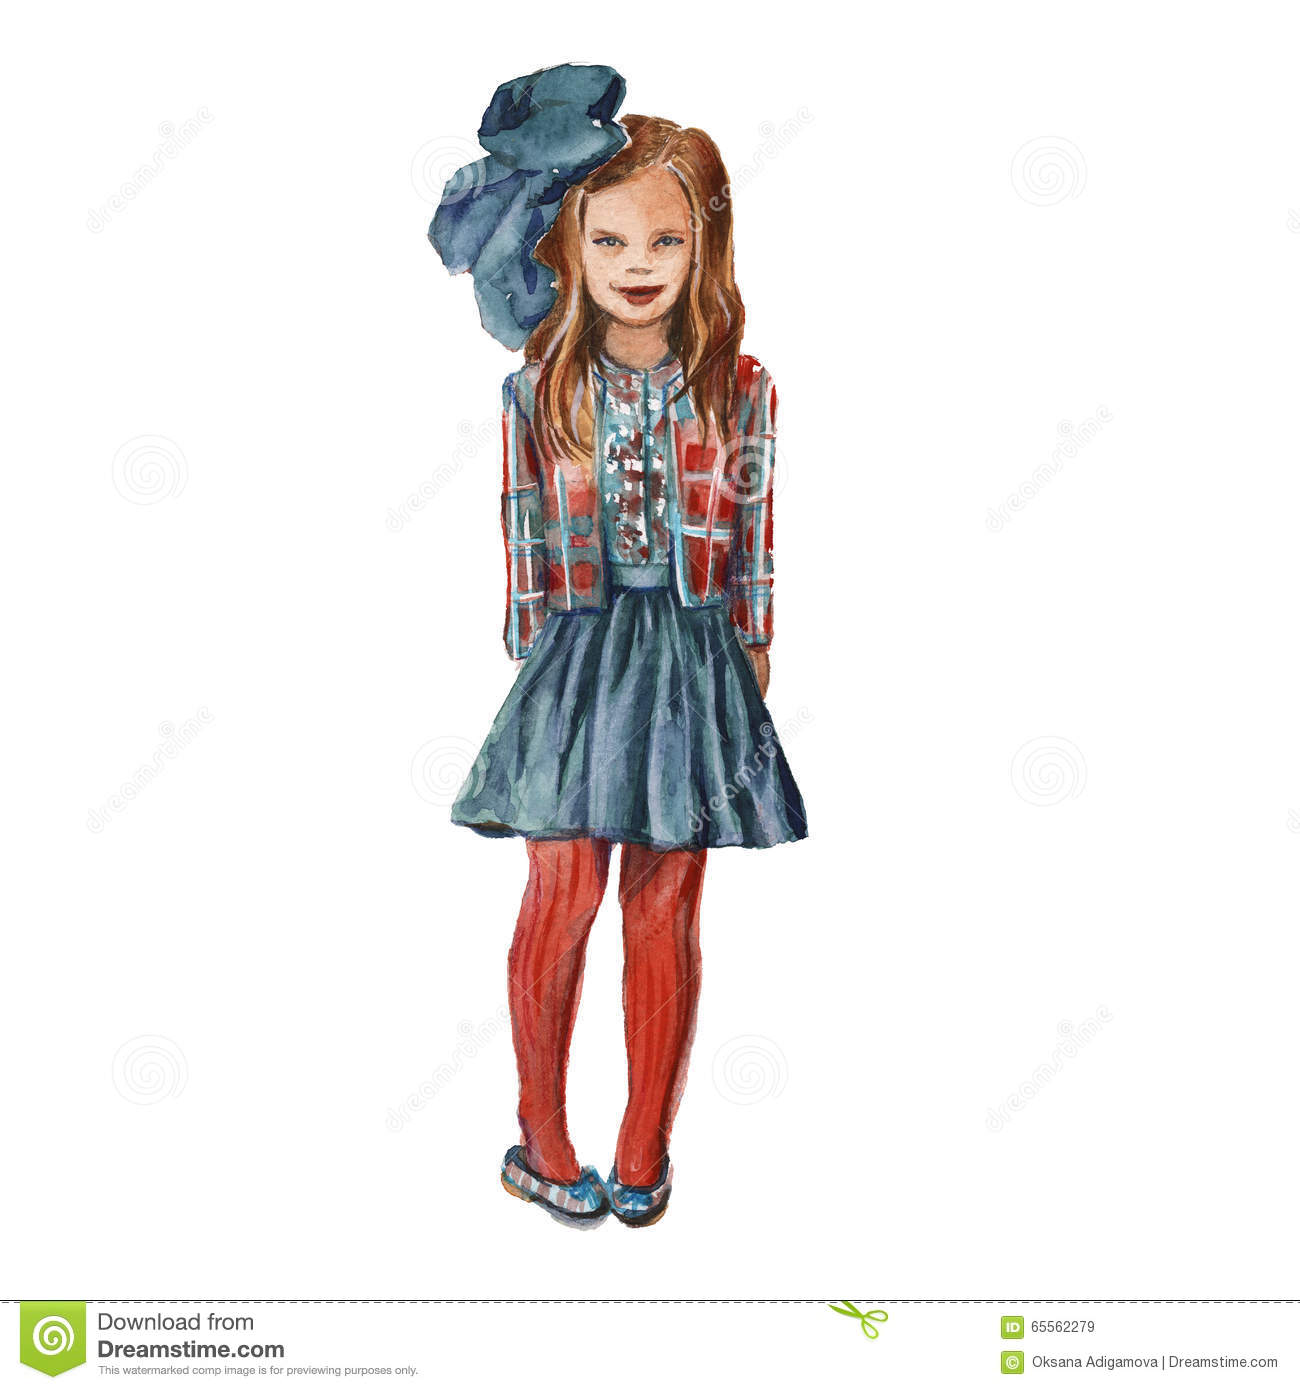 f9ac12c9e4a The Girl With A Bow In Red Stockings. Children s Fashion. Isolat ...